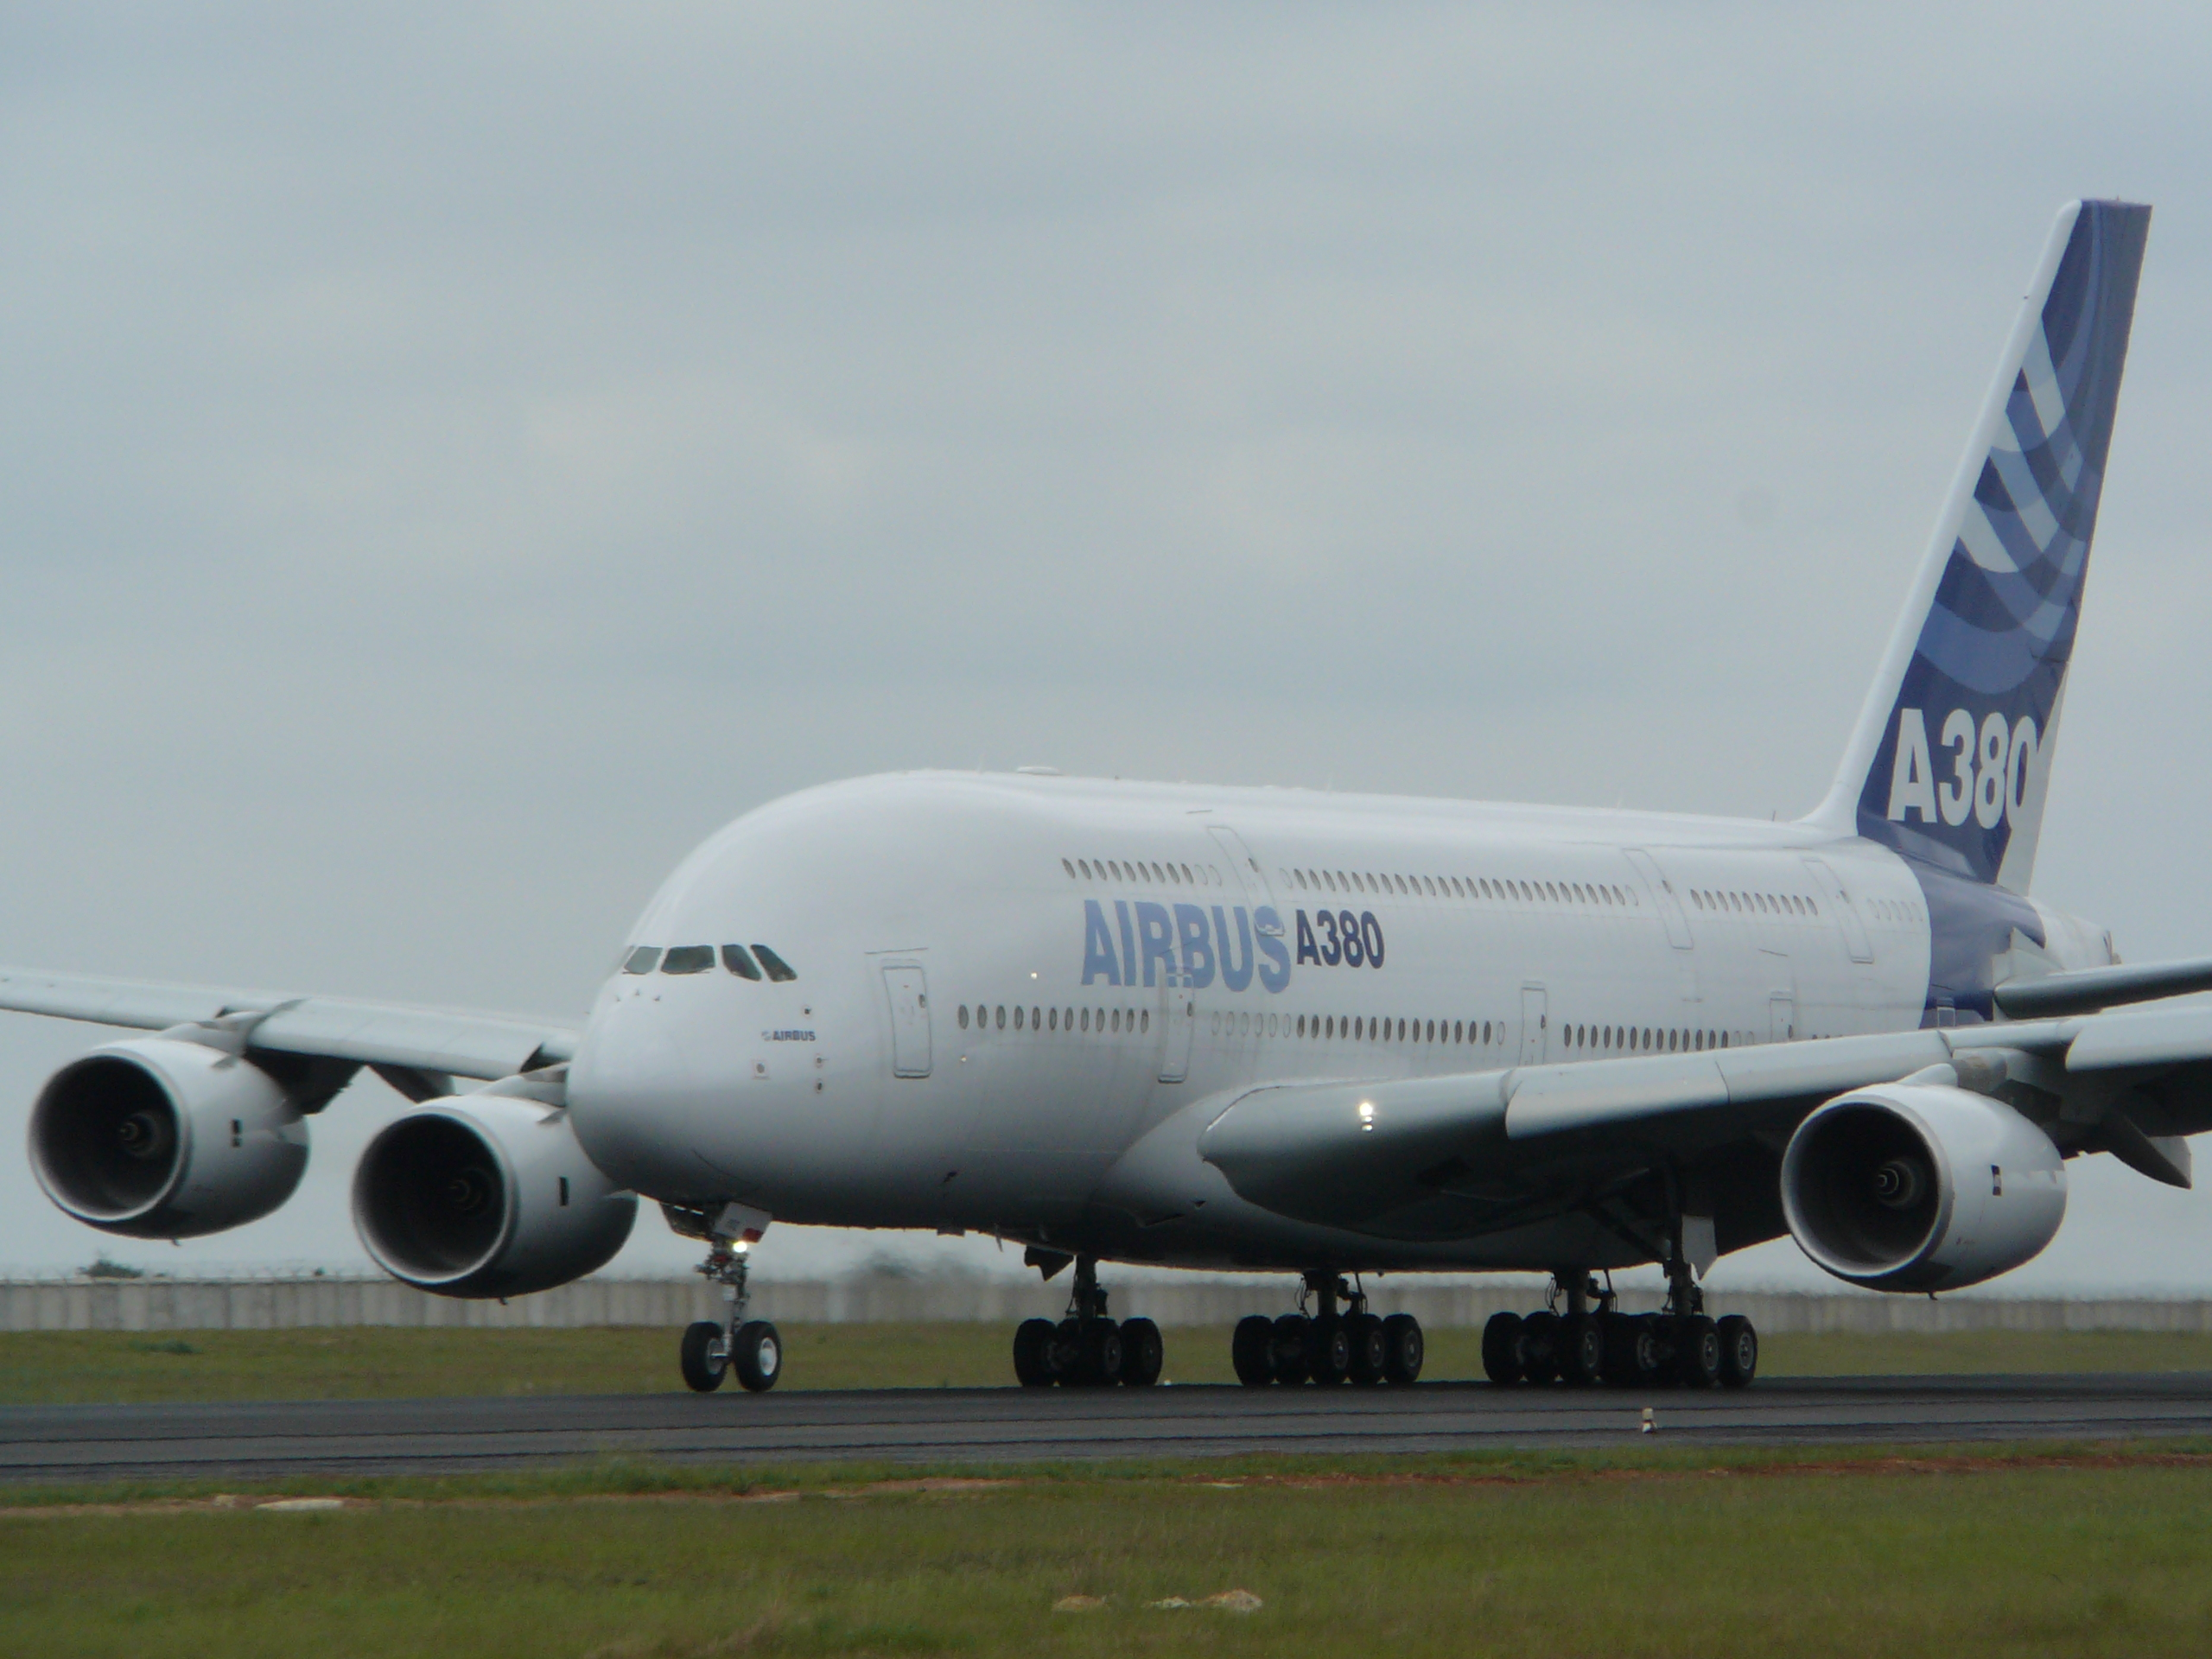 File:Airbus A380 at Tambo Airport.jpg - Wikimedia Commons